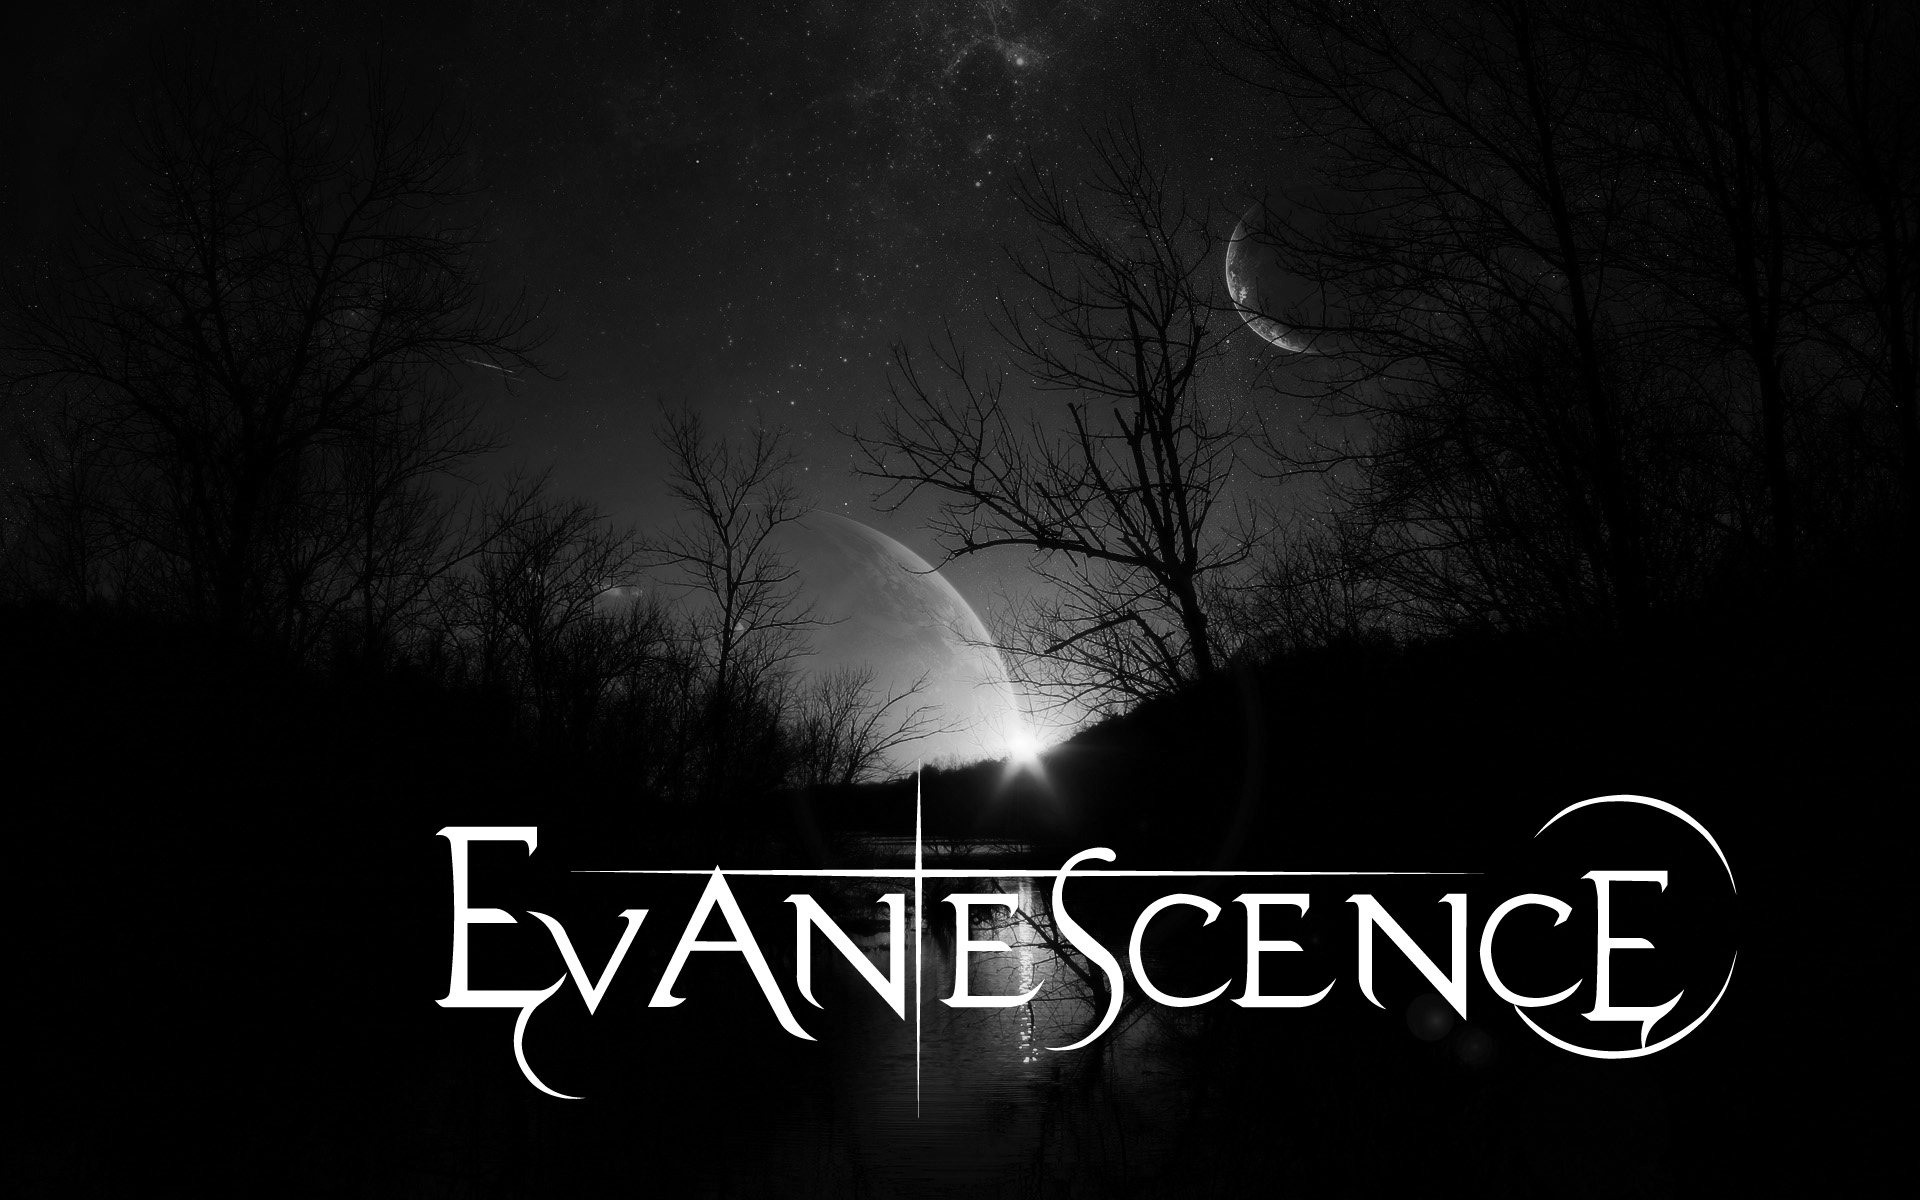 Evanescence Wallpaper by RisenDave 1920x1200